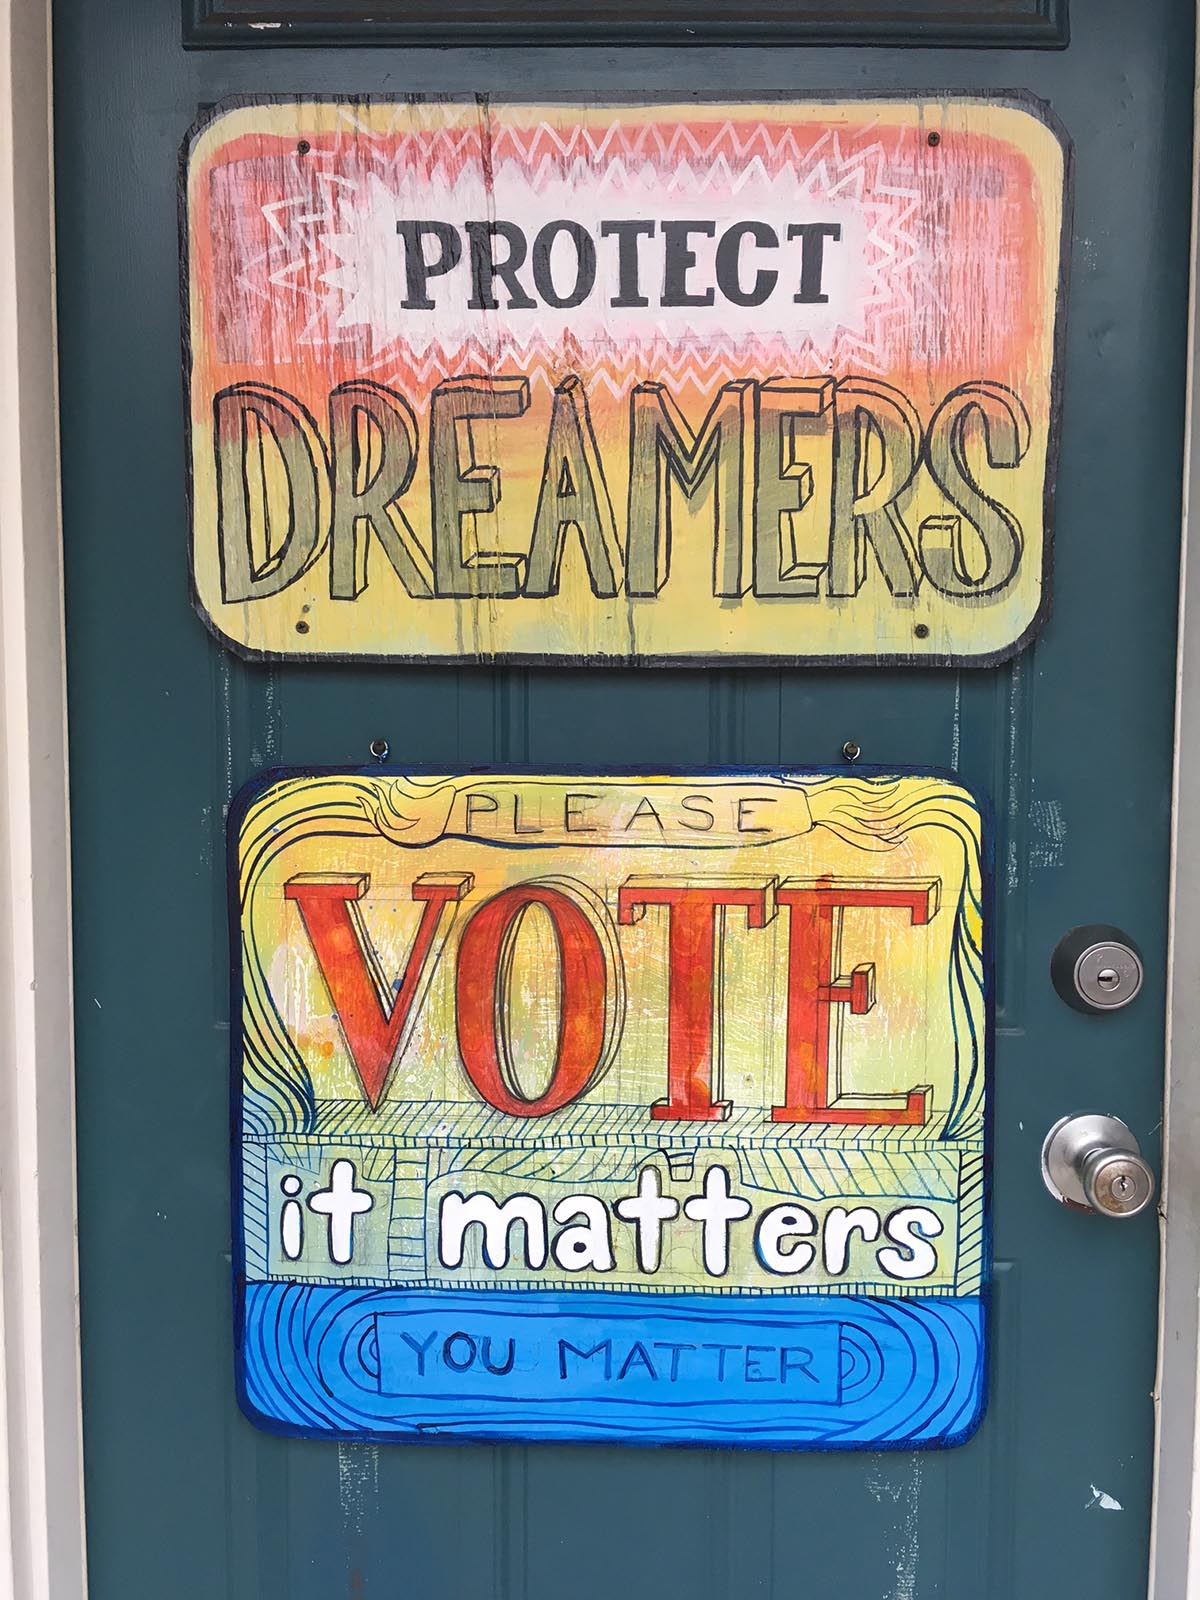 VOTE_PROTECT DREAMERS_SIGNS.jpg